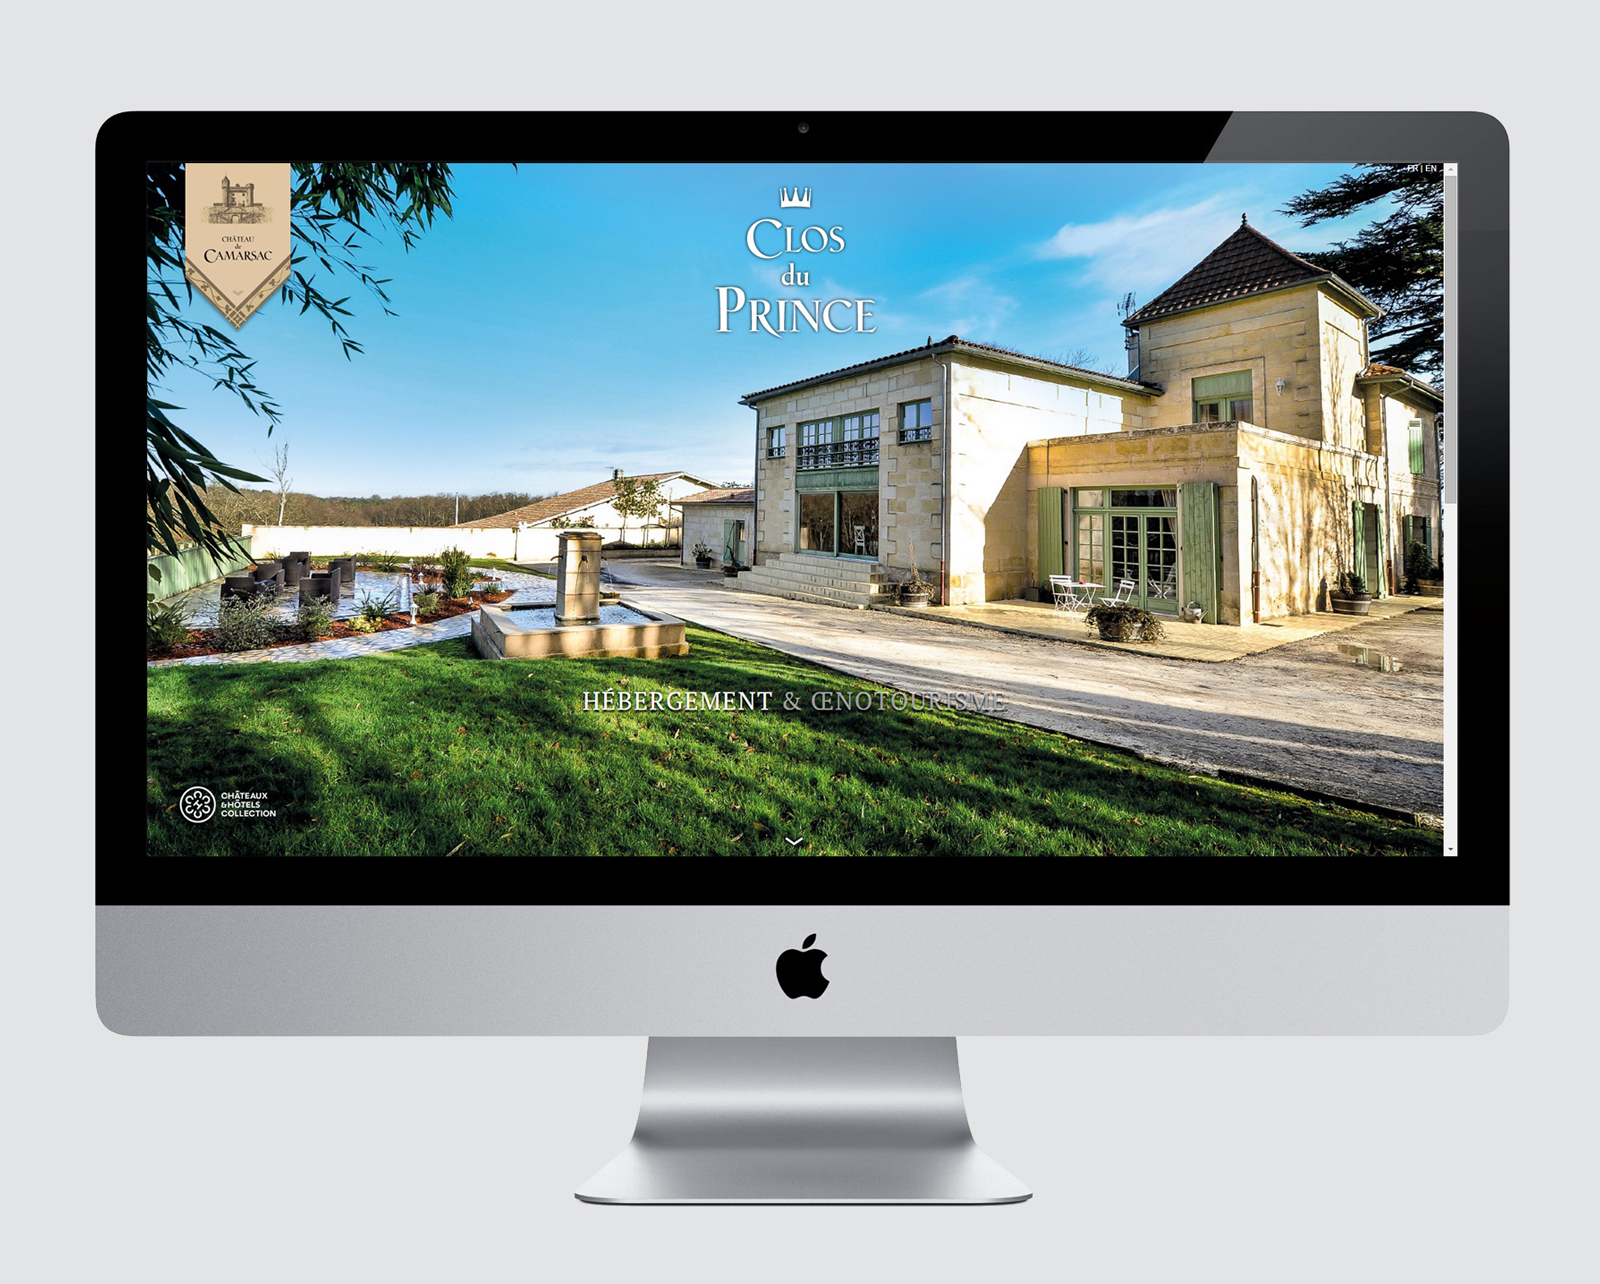 CLOS DU PRINCE B&B - WEBSITE